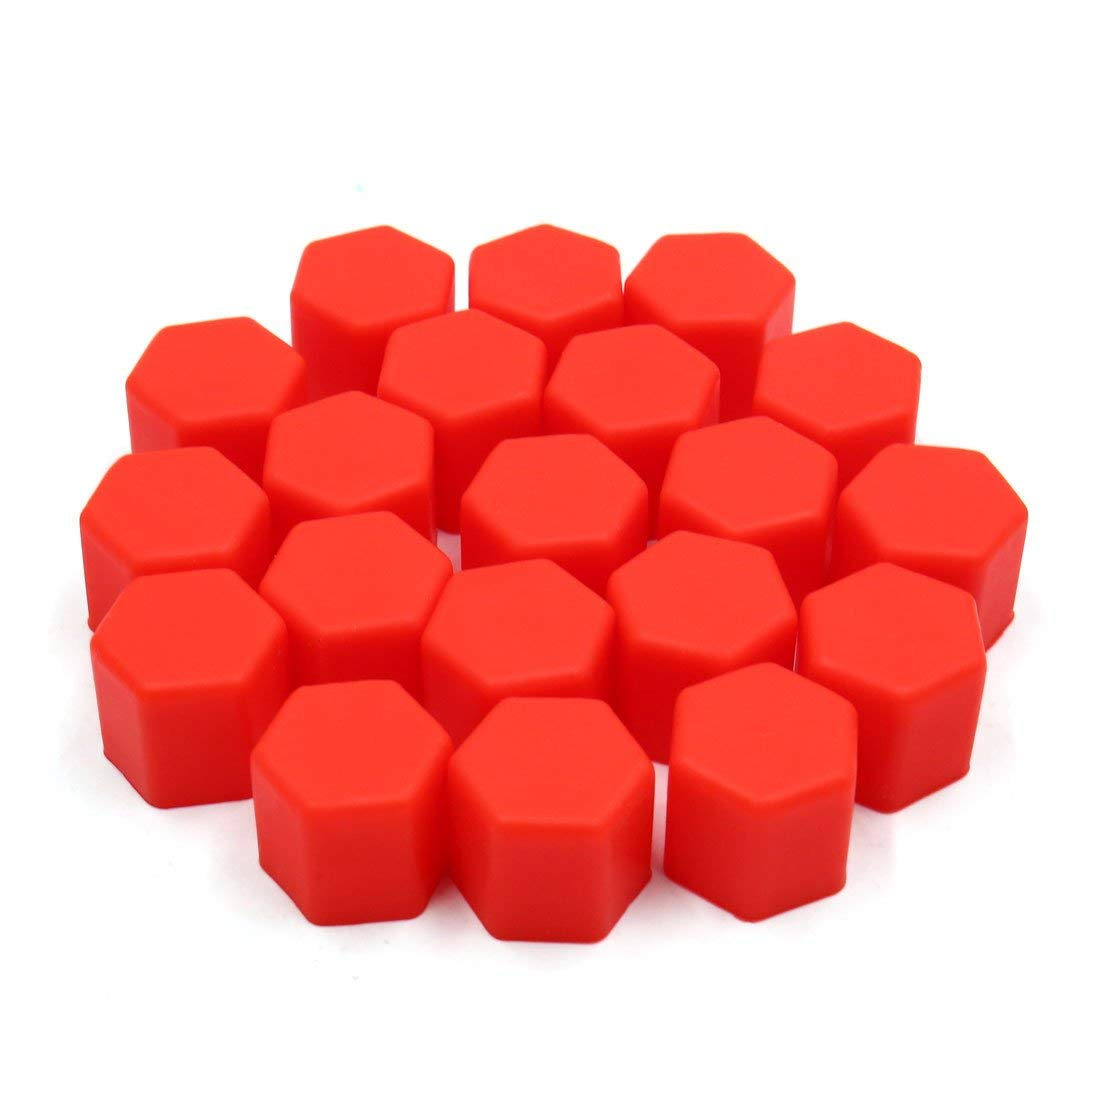 uxcell 20 Pcs 17mm Red <font><b>Silicone</b></font> <font><b>Car</b></font> <font><b>Wheel</b></font> Hub Screw <font><b>Cover</b></font> Bolt Protector <font><b>Nut</b></font> Cap image